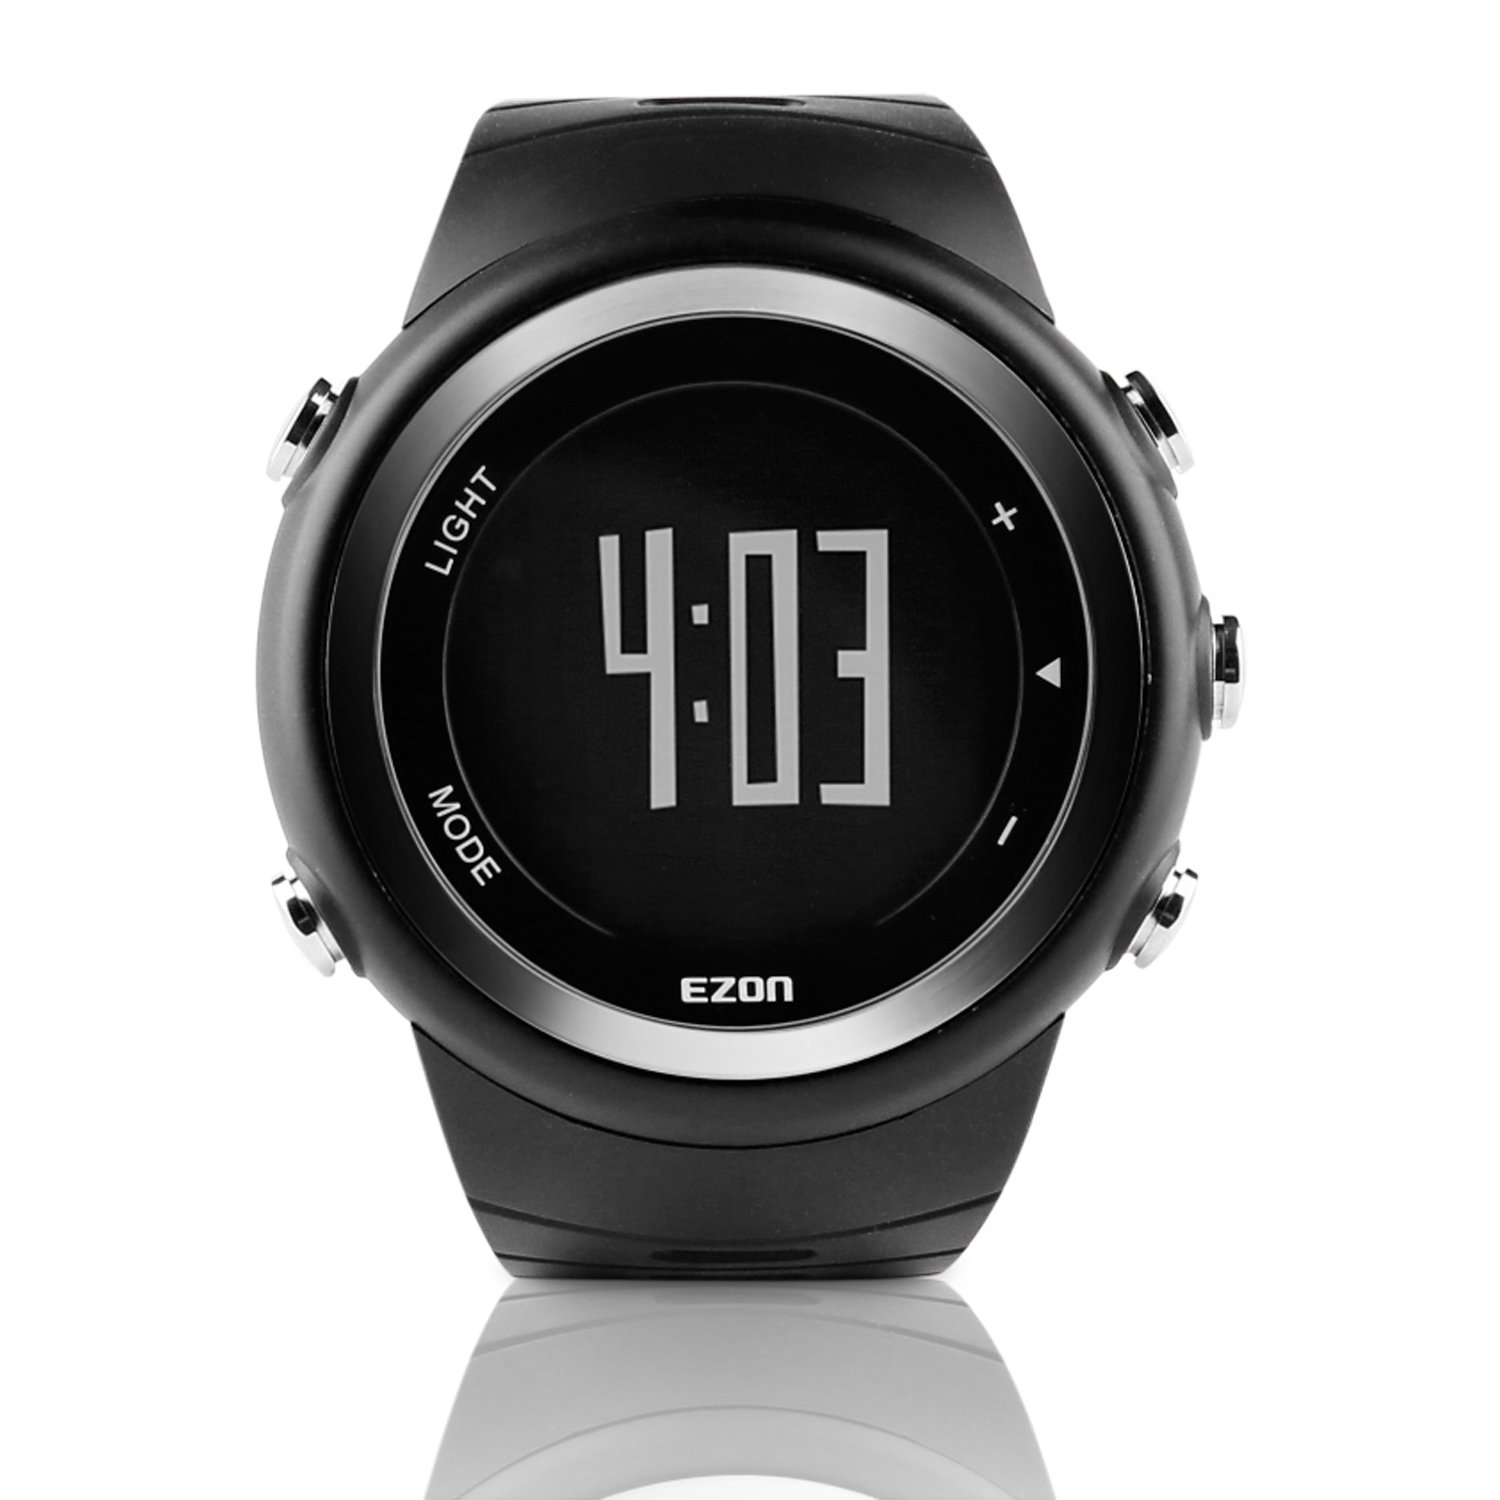 EZON Sports Watch with Big Number Pedometer Calorie Counter Running Digital Wristwatch for Men T023B01